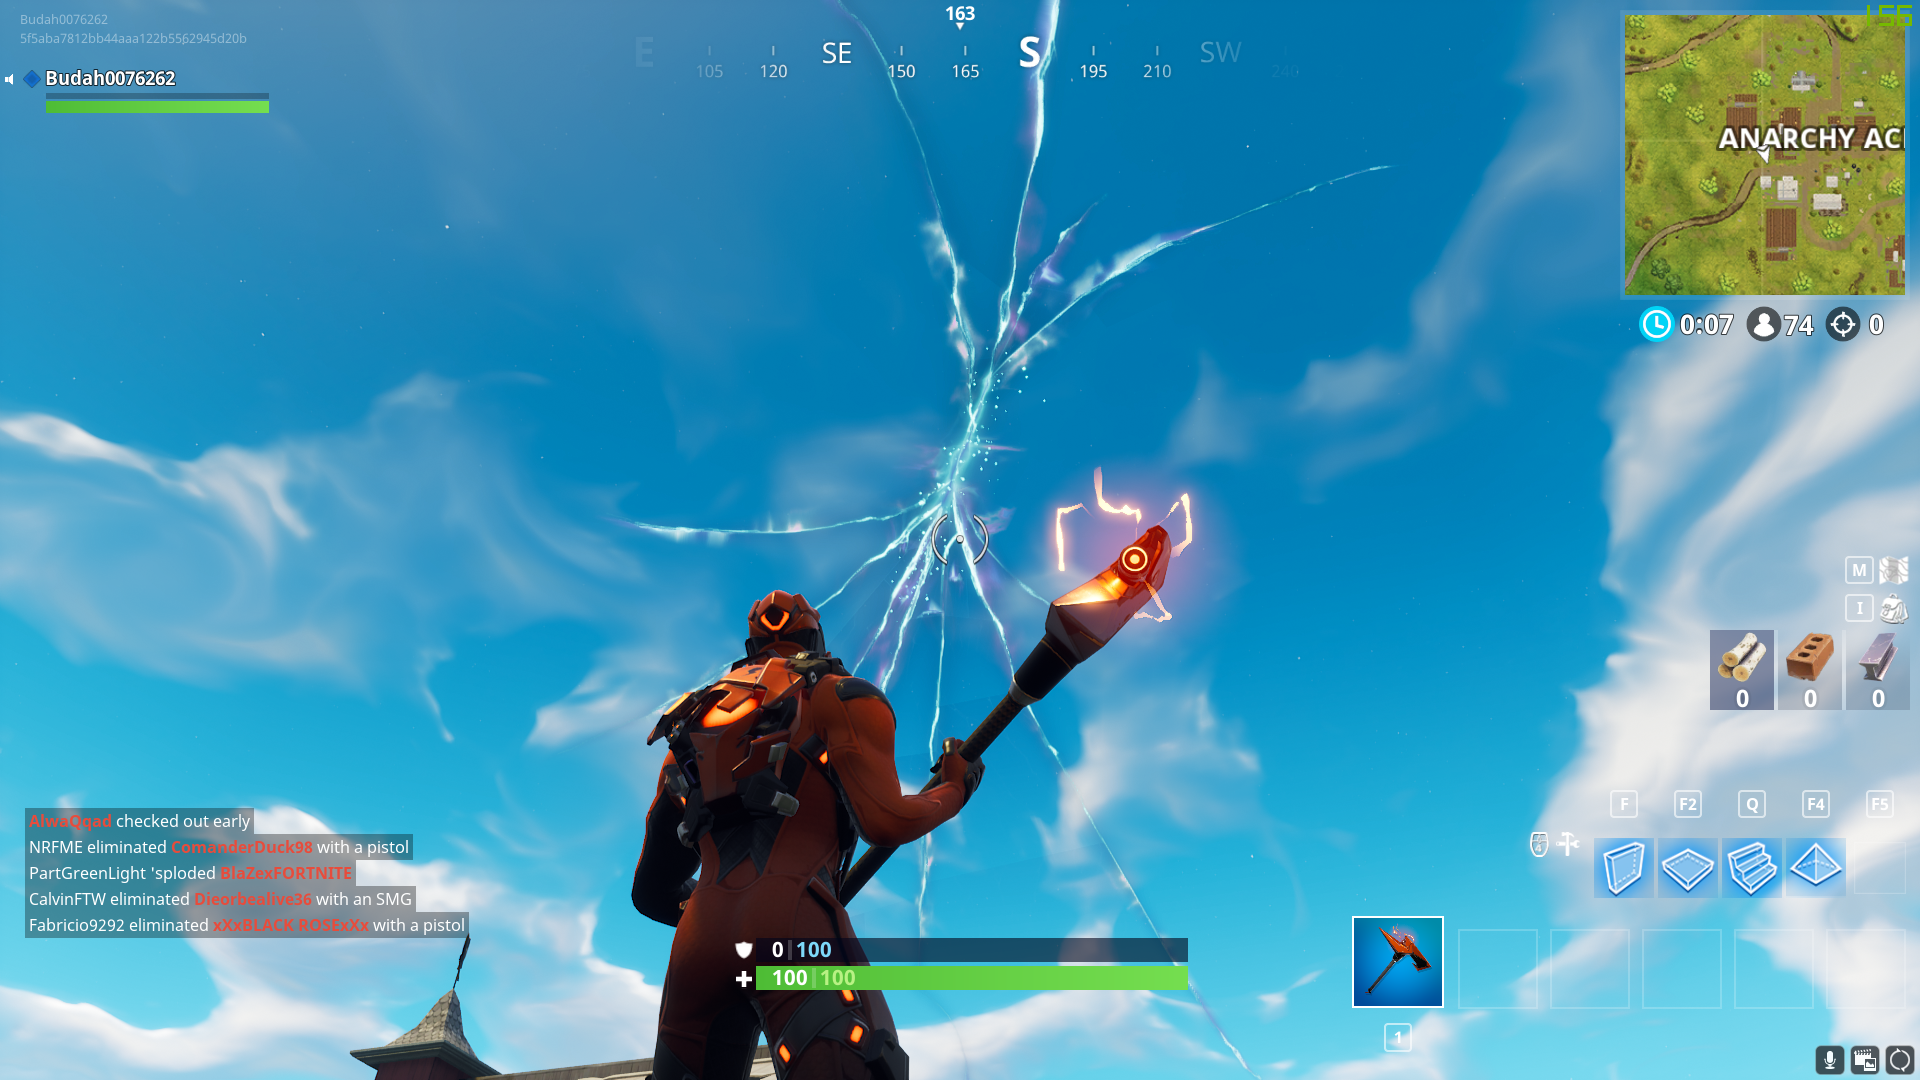 What Happened in Fortnite Today? Rocket Launch Cracks Sky ...